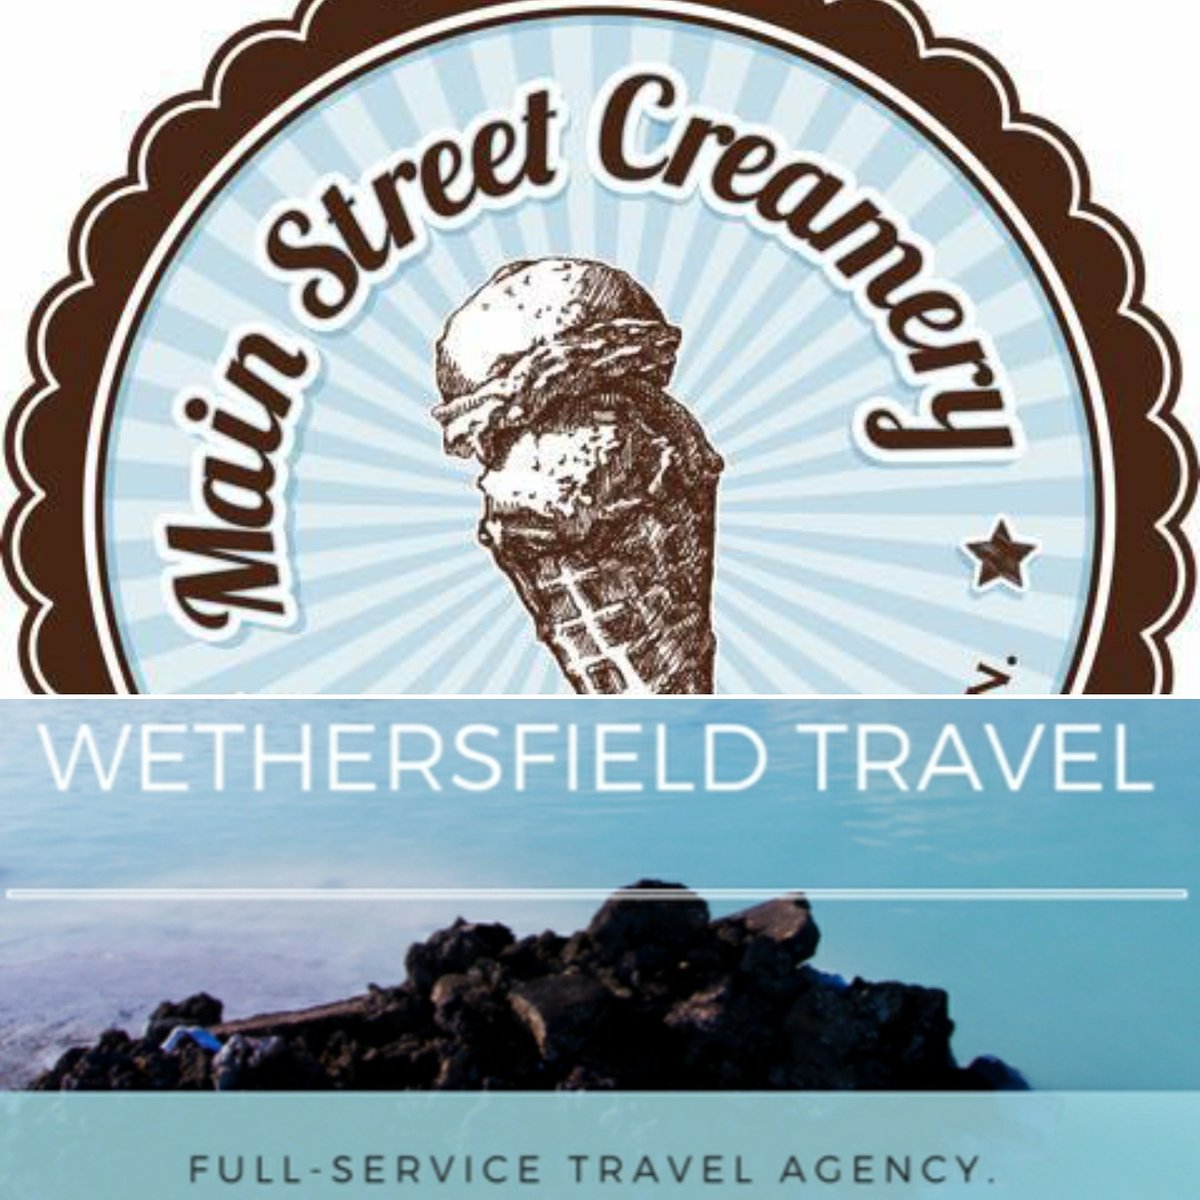 Vendor Spotlight!  Who doesn't scream for ice cream? Main Street Creamery will have ice cream samples Saturday 29th!  Need to get away? Wethersfield Travel will be on hand to book your dream trip!  #oldwethersfield #wedding #icecream #travel #honeymoon #ctweddings #ctbridepic.twitter.com/4uNSTB1St7